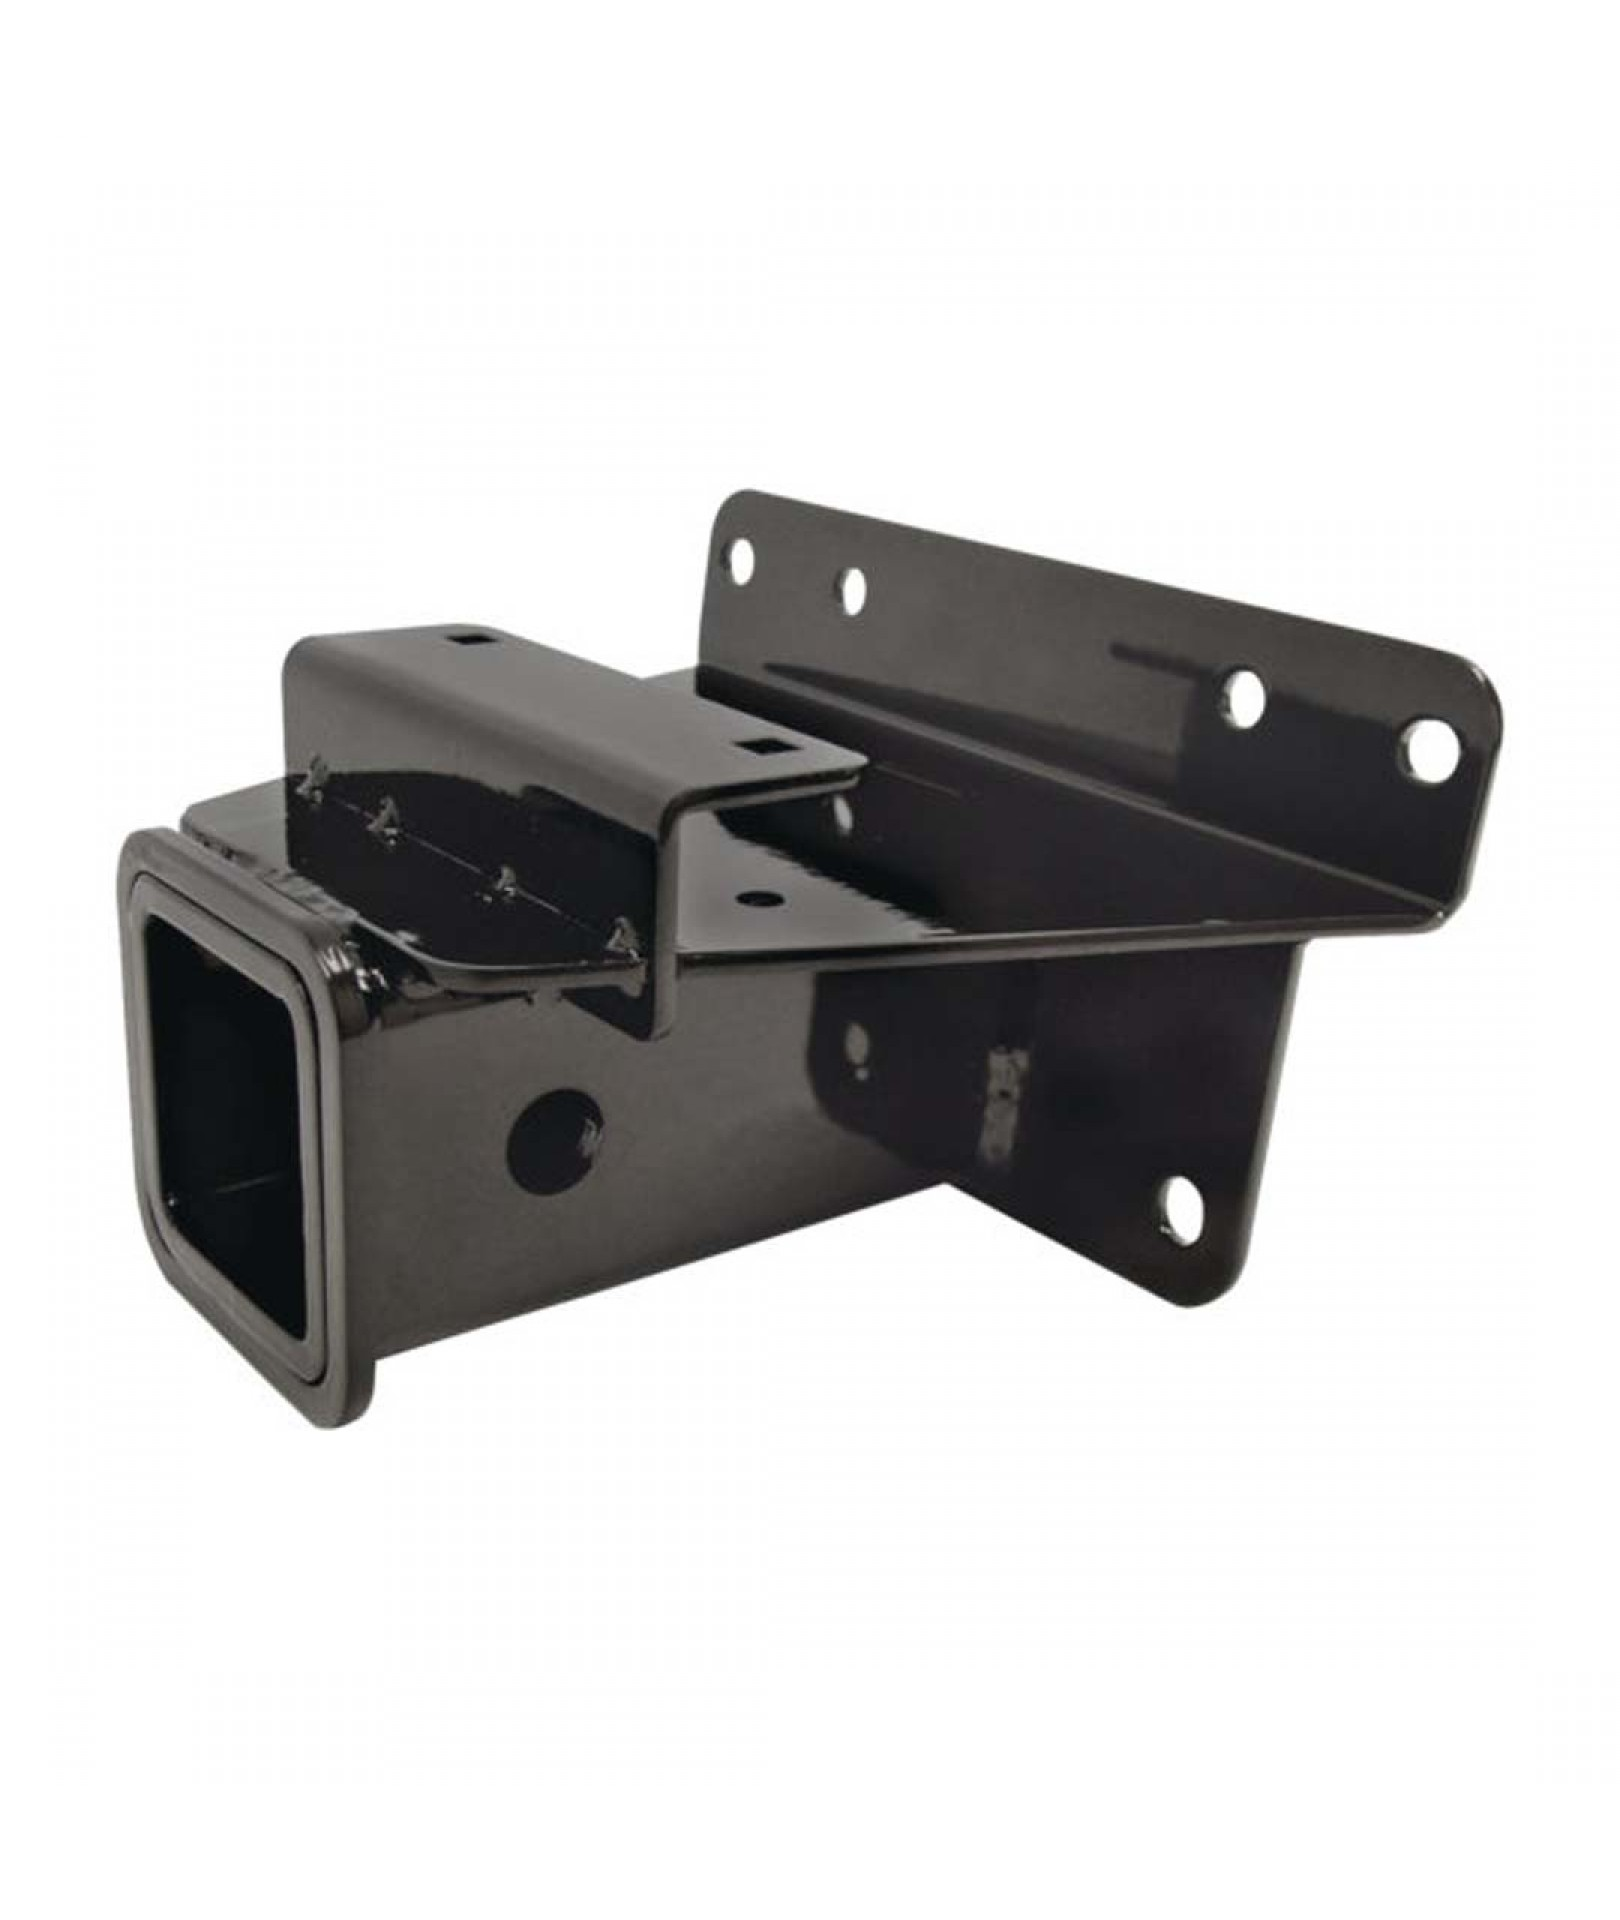 2 front receiver hitch for yamaha hitches equipment for Yamaha receiver accessories